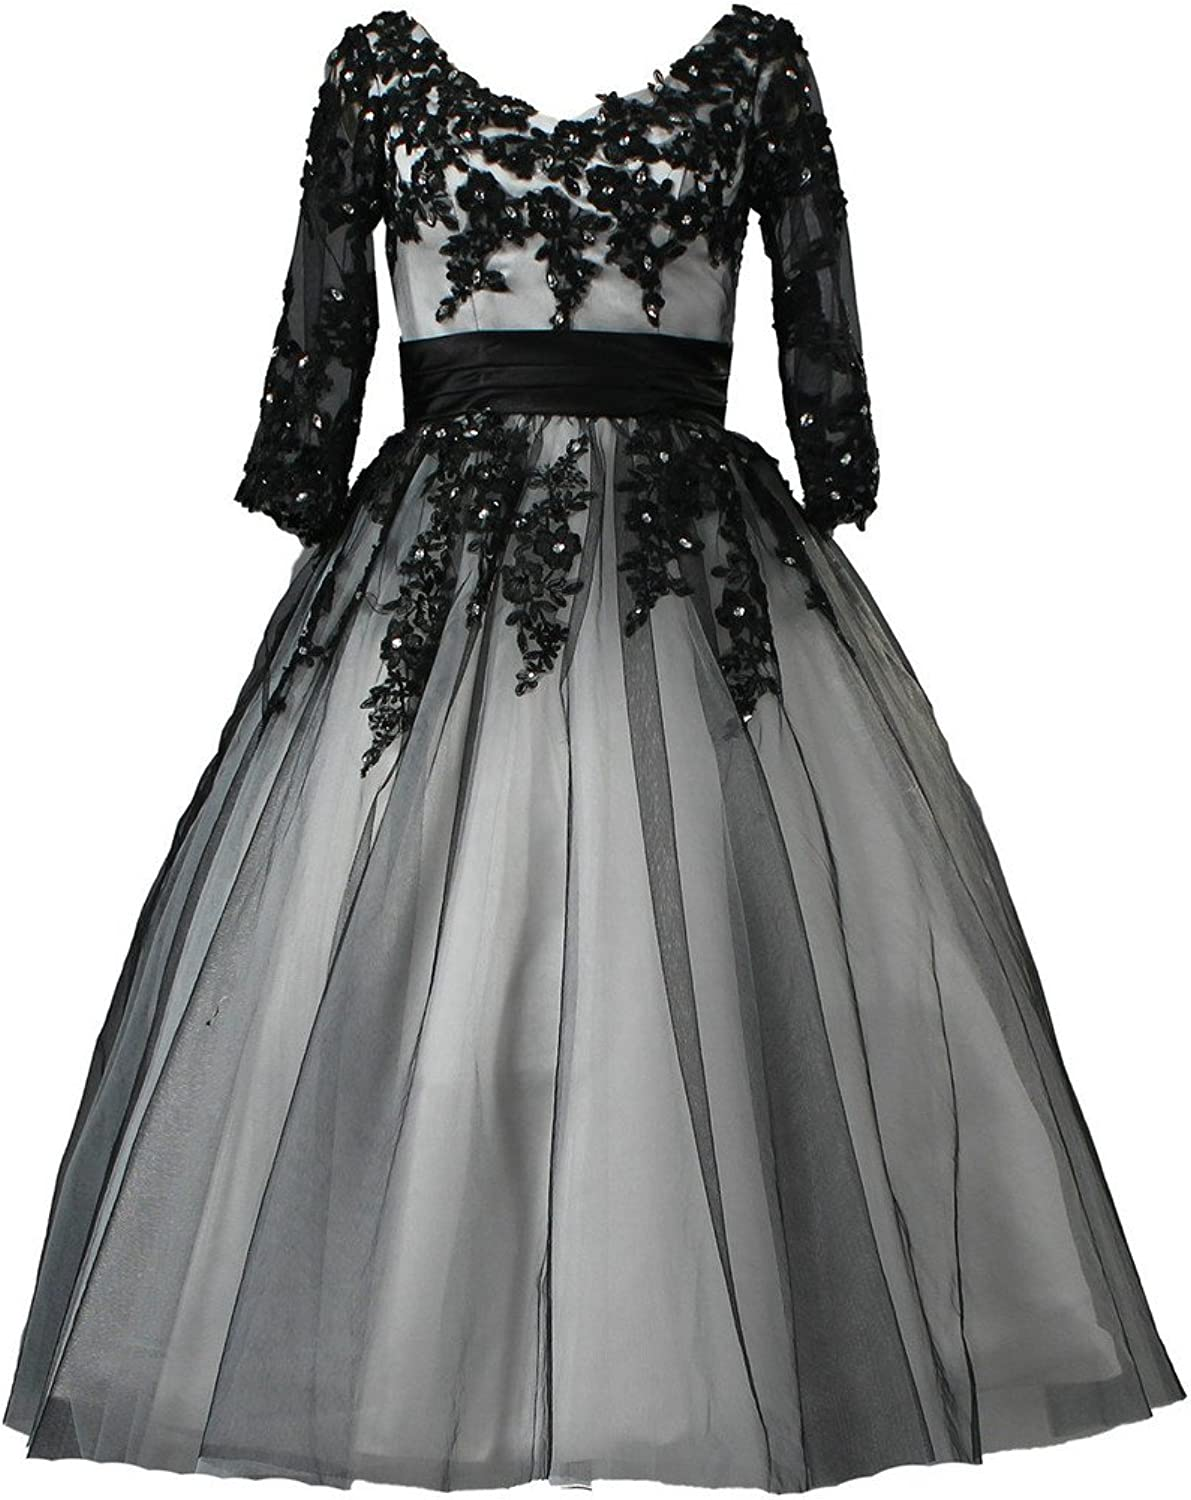 ANTS Women's Vintage Tulle Lace Satin Short Wedding Dresses with Sleeves